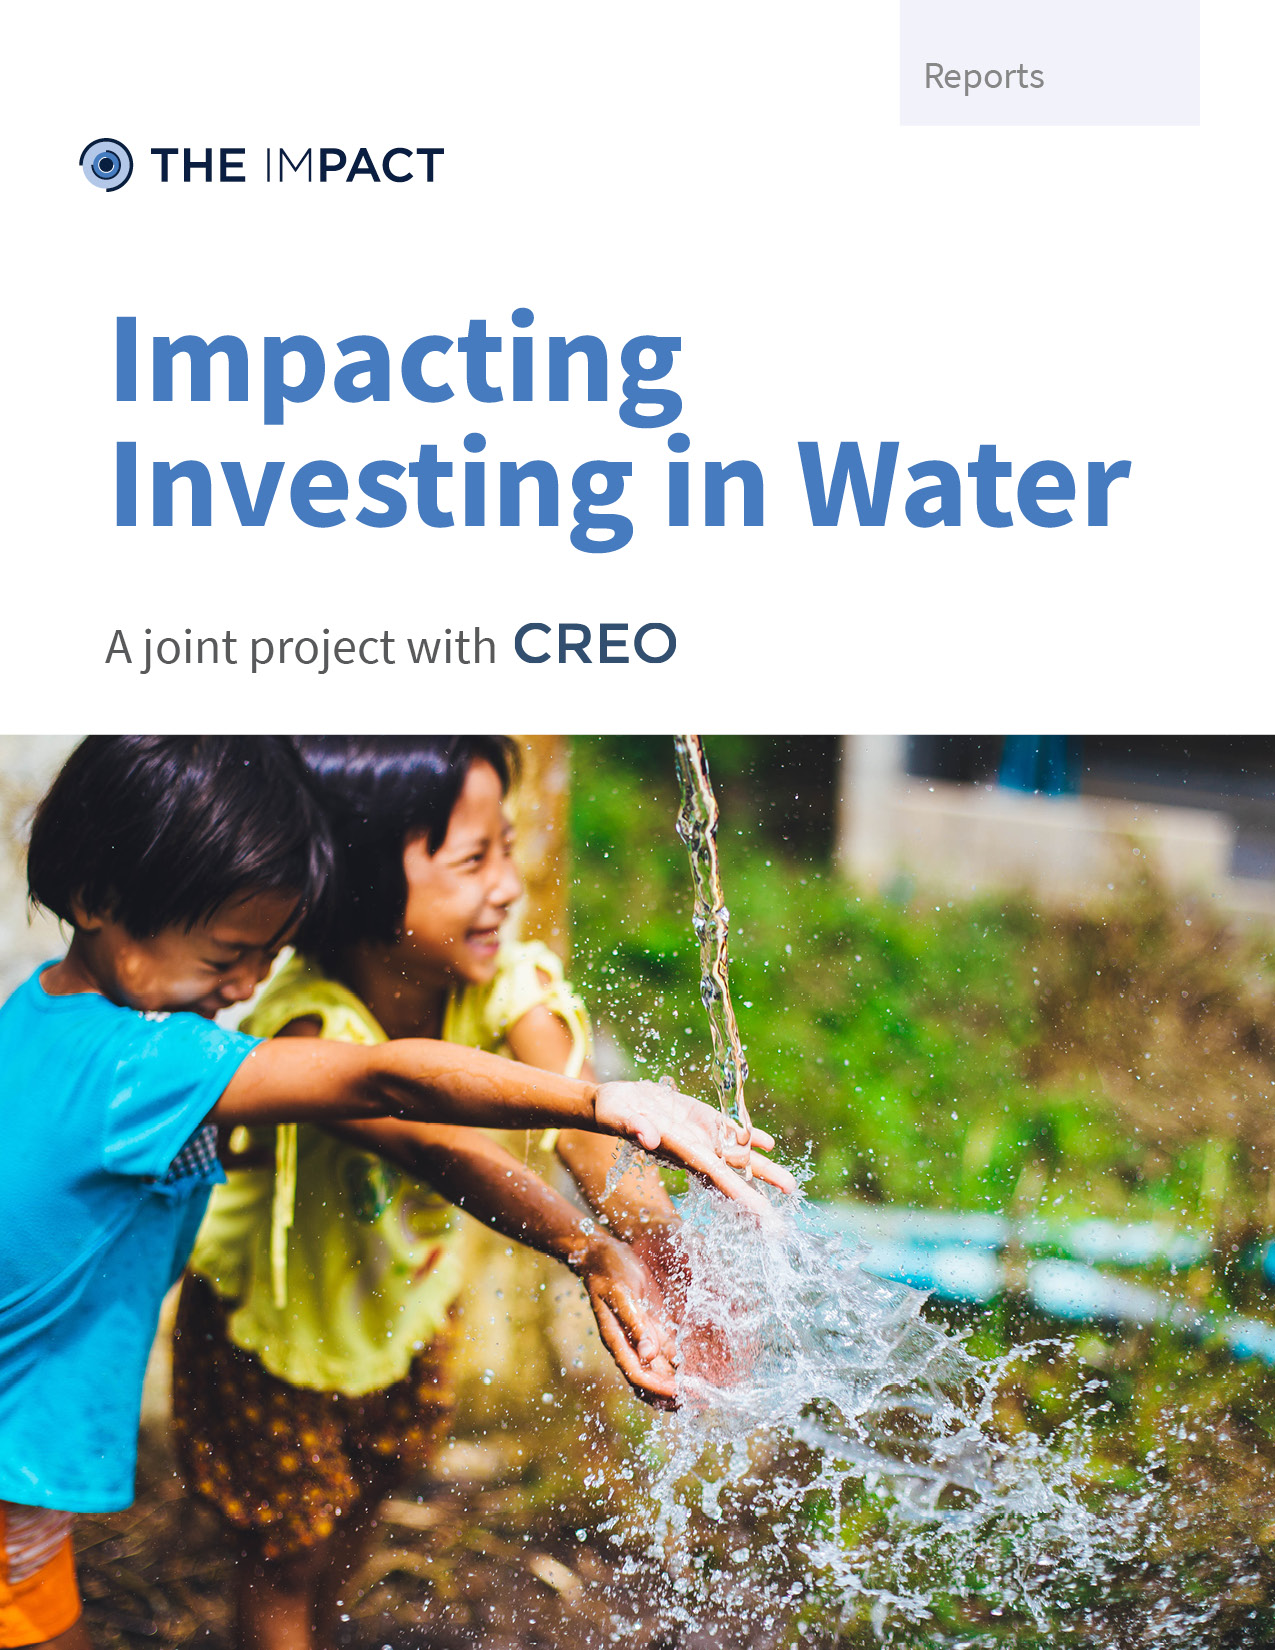 Impacting Investing in Water. A report by The ImPact.